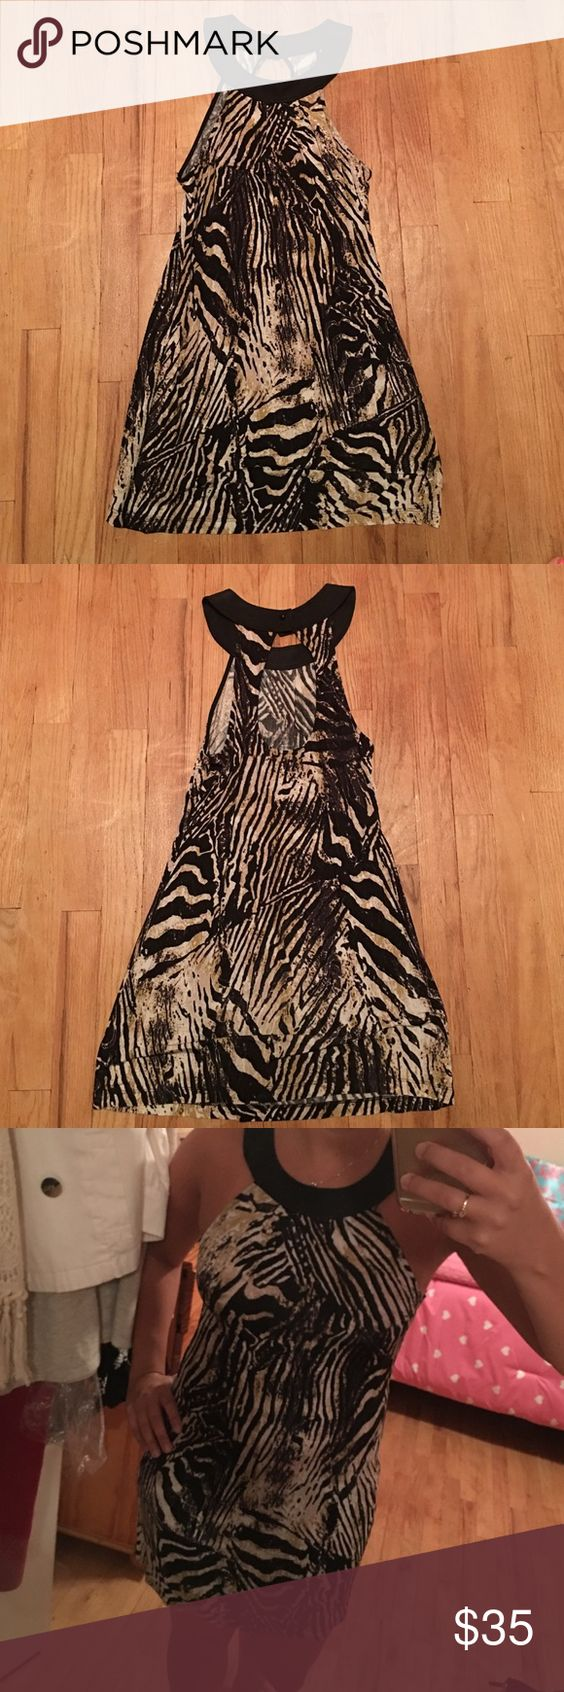 Animal Print Mini Dress 🐯 GUESS Animal Print mini dress/tunic. Is bet short can be worn with leggings as well. Size small. Stretchy thin fabric. Worn once. Guess Dresses Mini